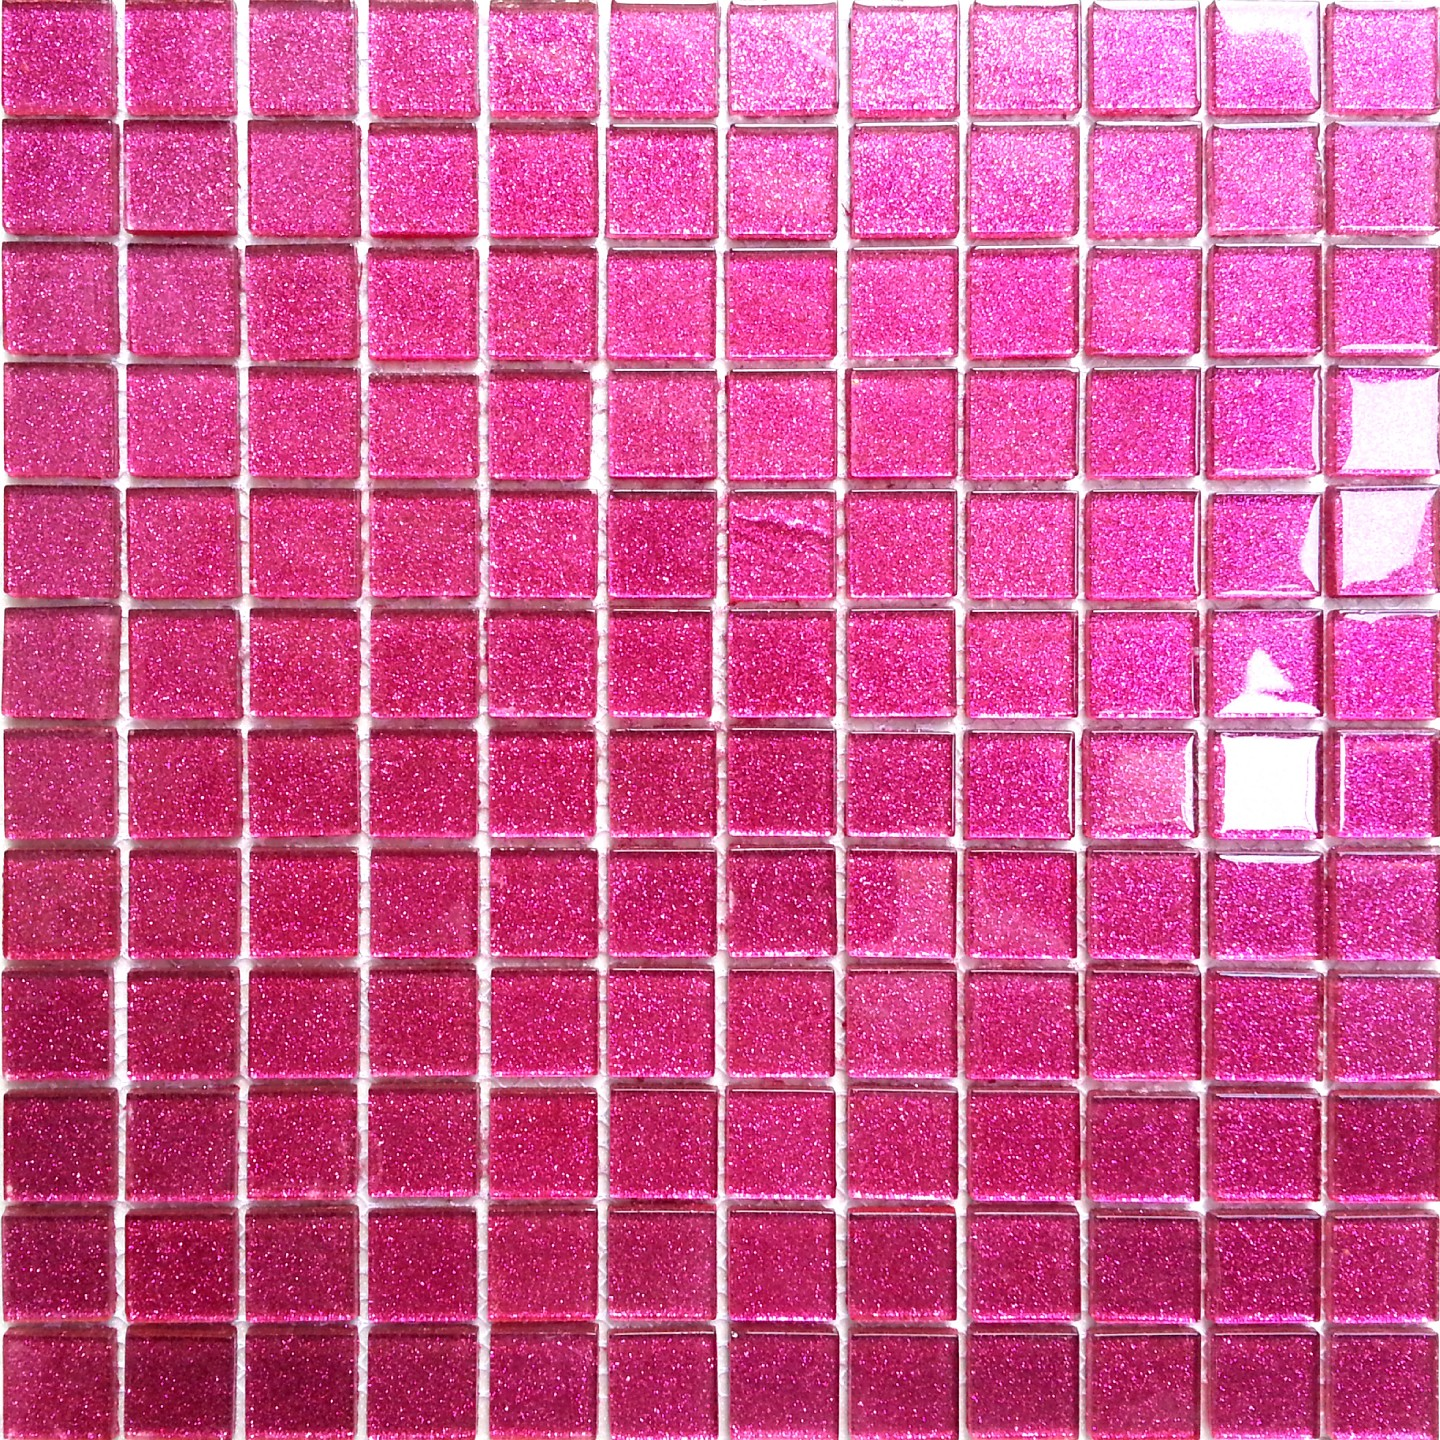 Pink glitter bathroom tiles tile designs glitter pink mosaic glass bathroom wall tiles shower bath basin dailygadgetfo Gallery